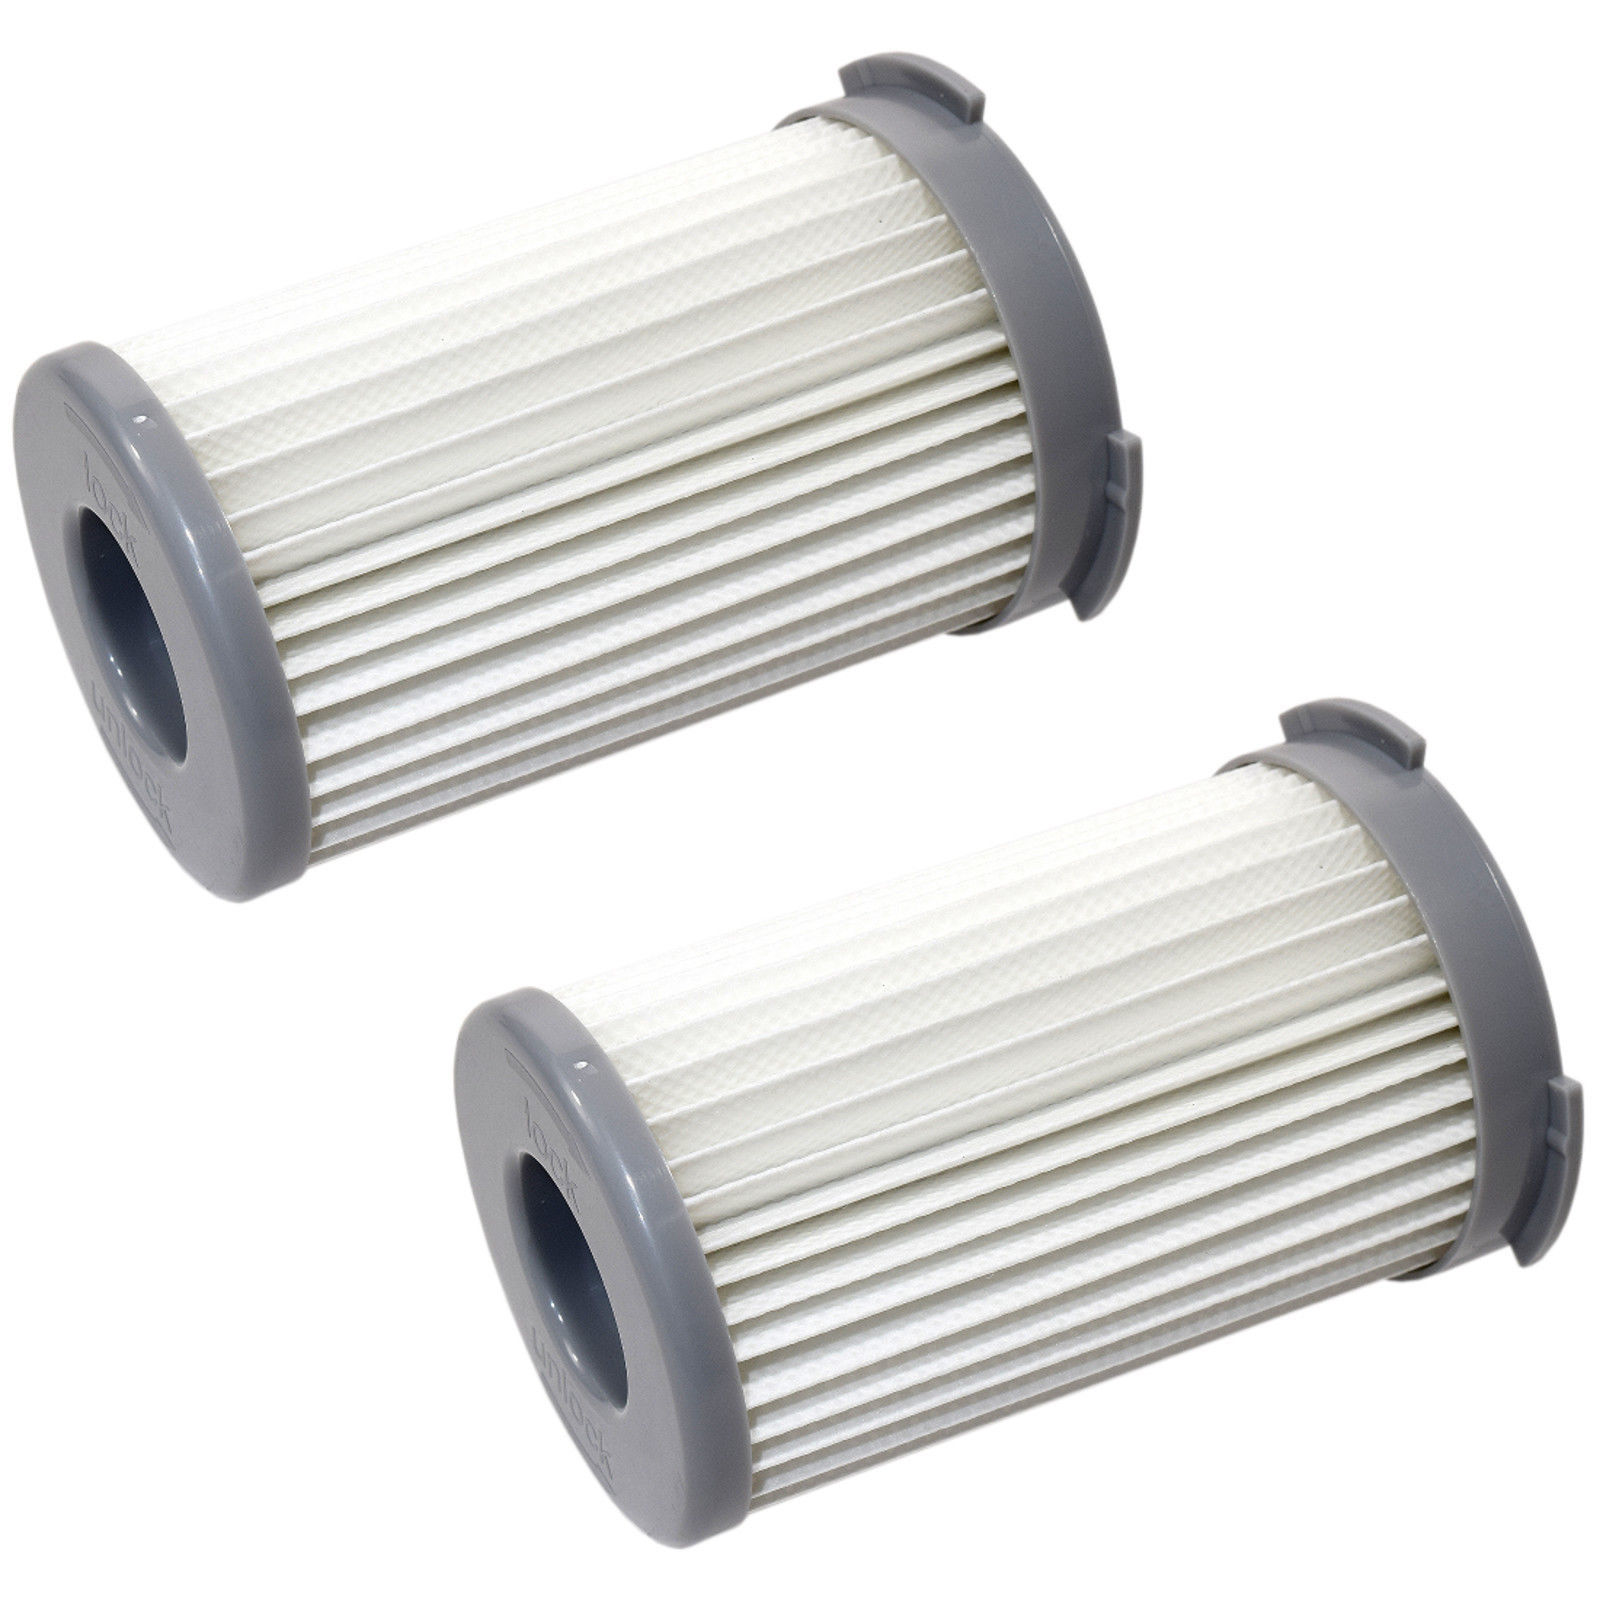 2-Pack HQRP HEPA Cartridge Filter for Electrolux EF75B, UF71B, 9001959494